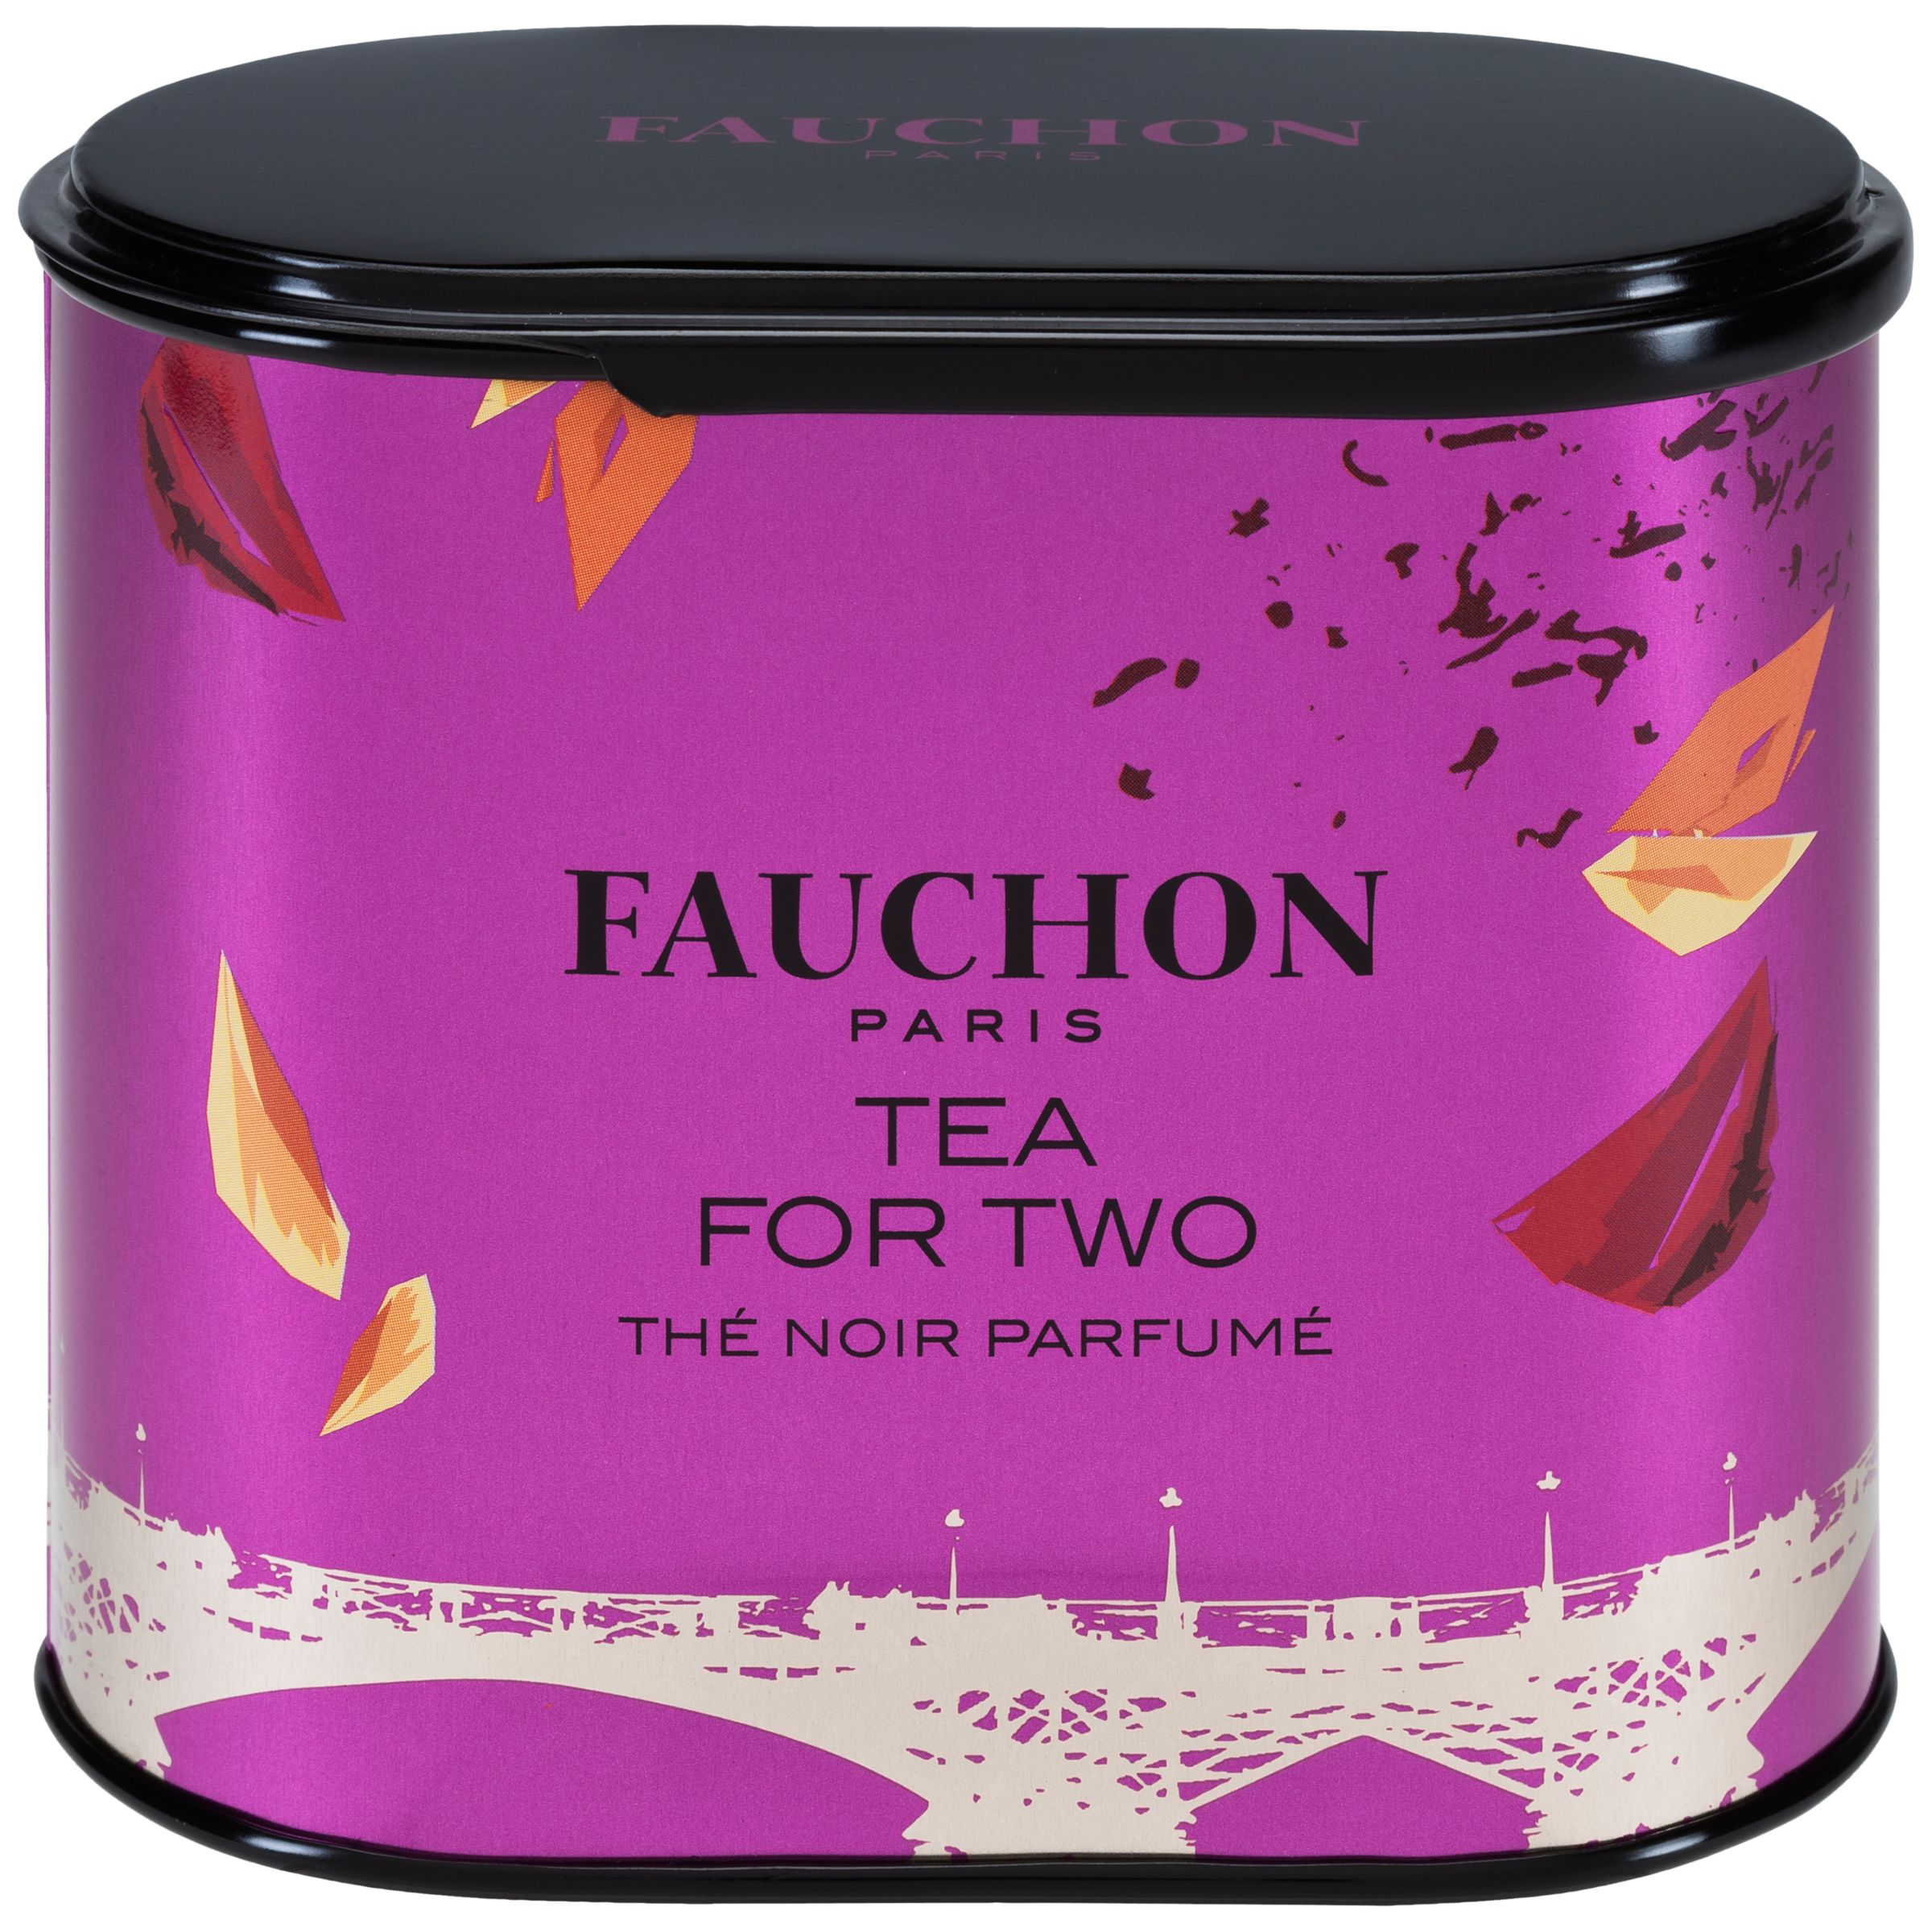 Fauchon Tea For Two Gift Tin, 100g